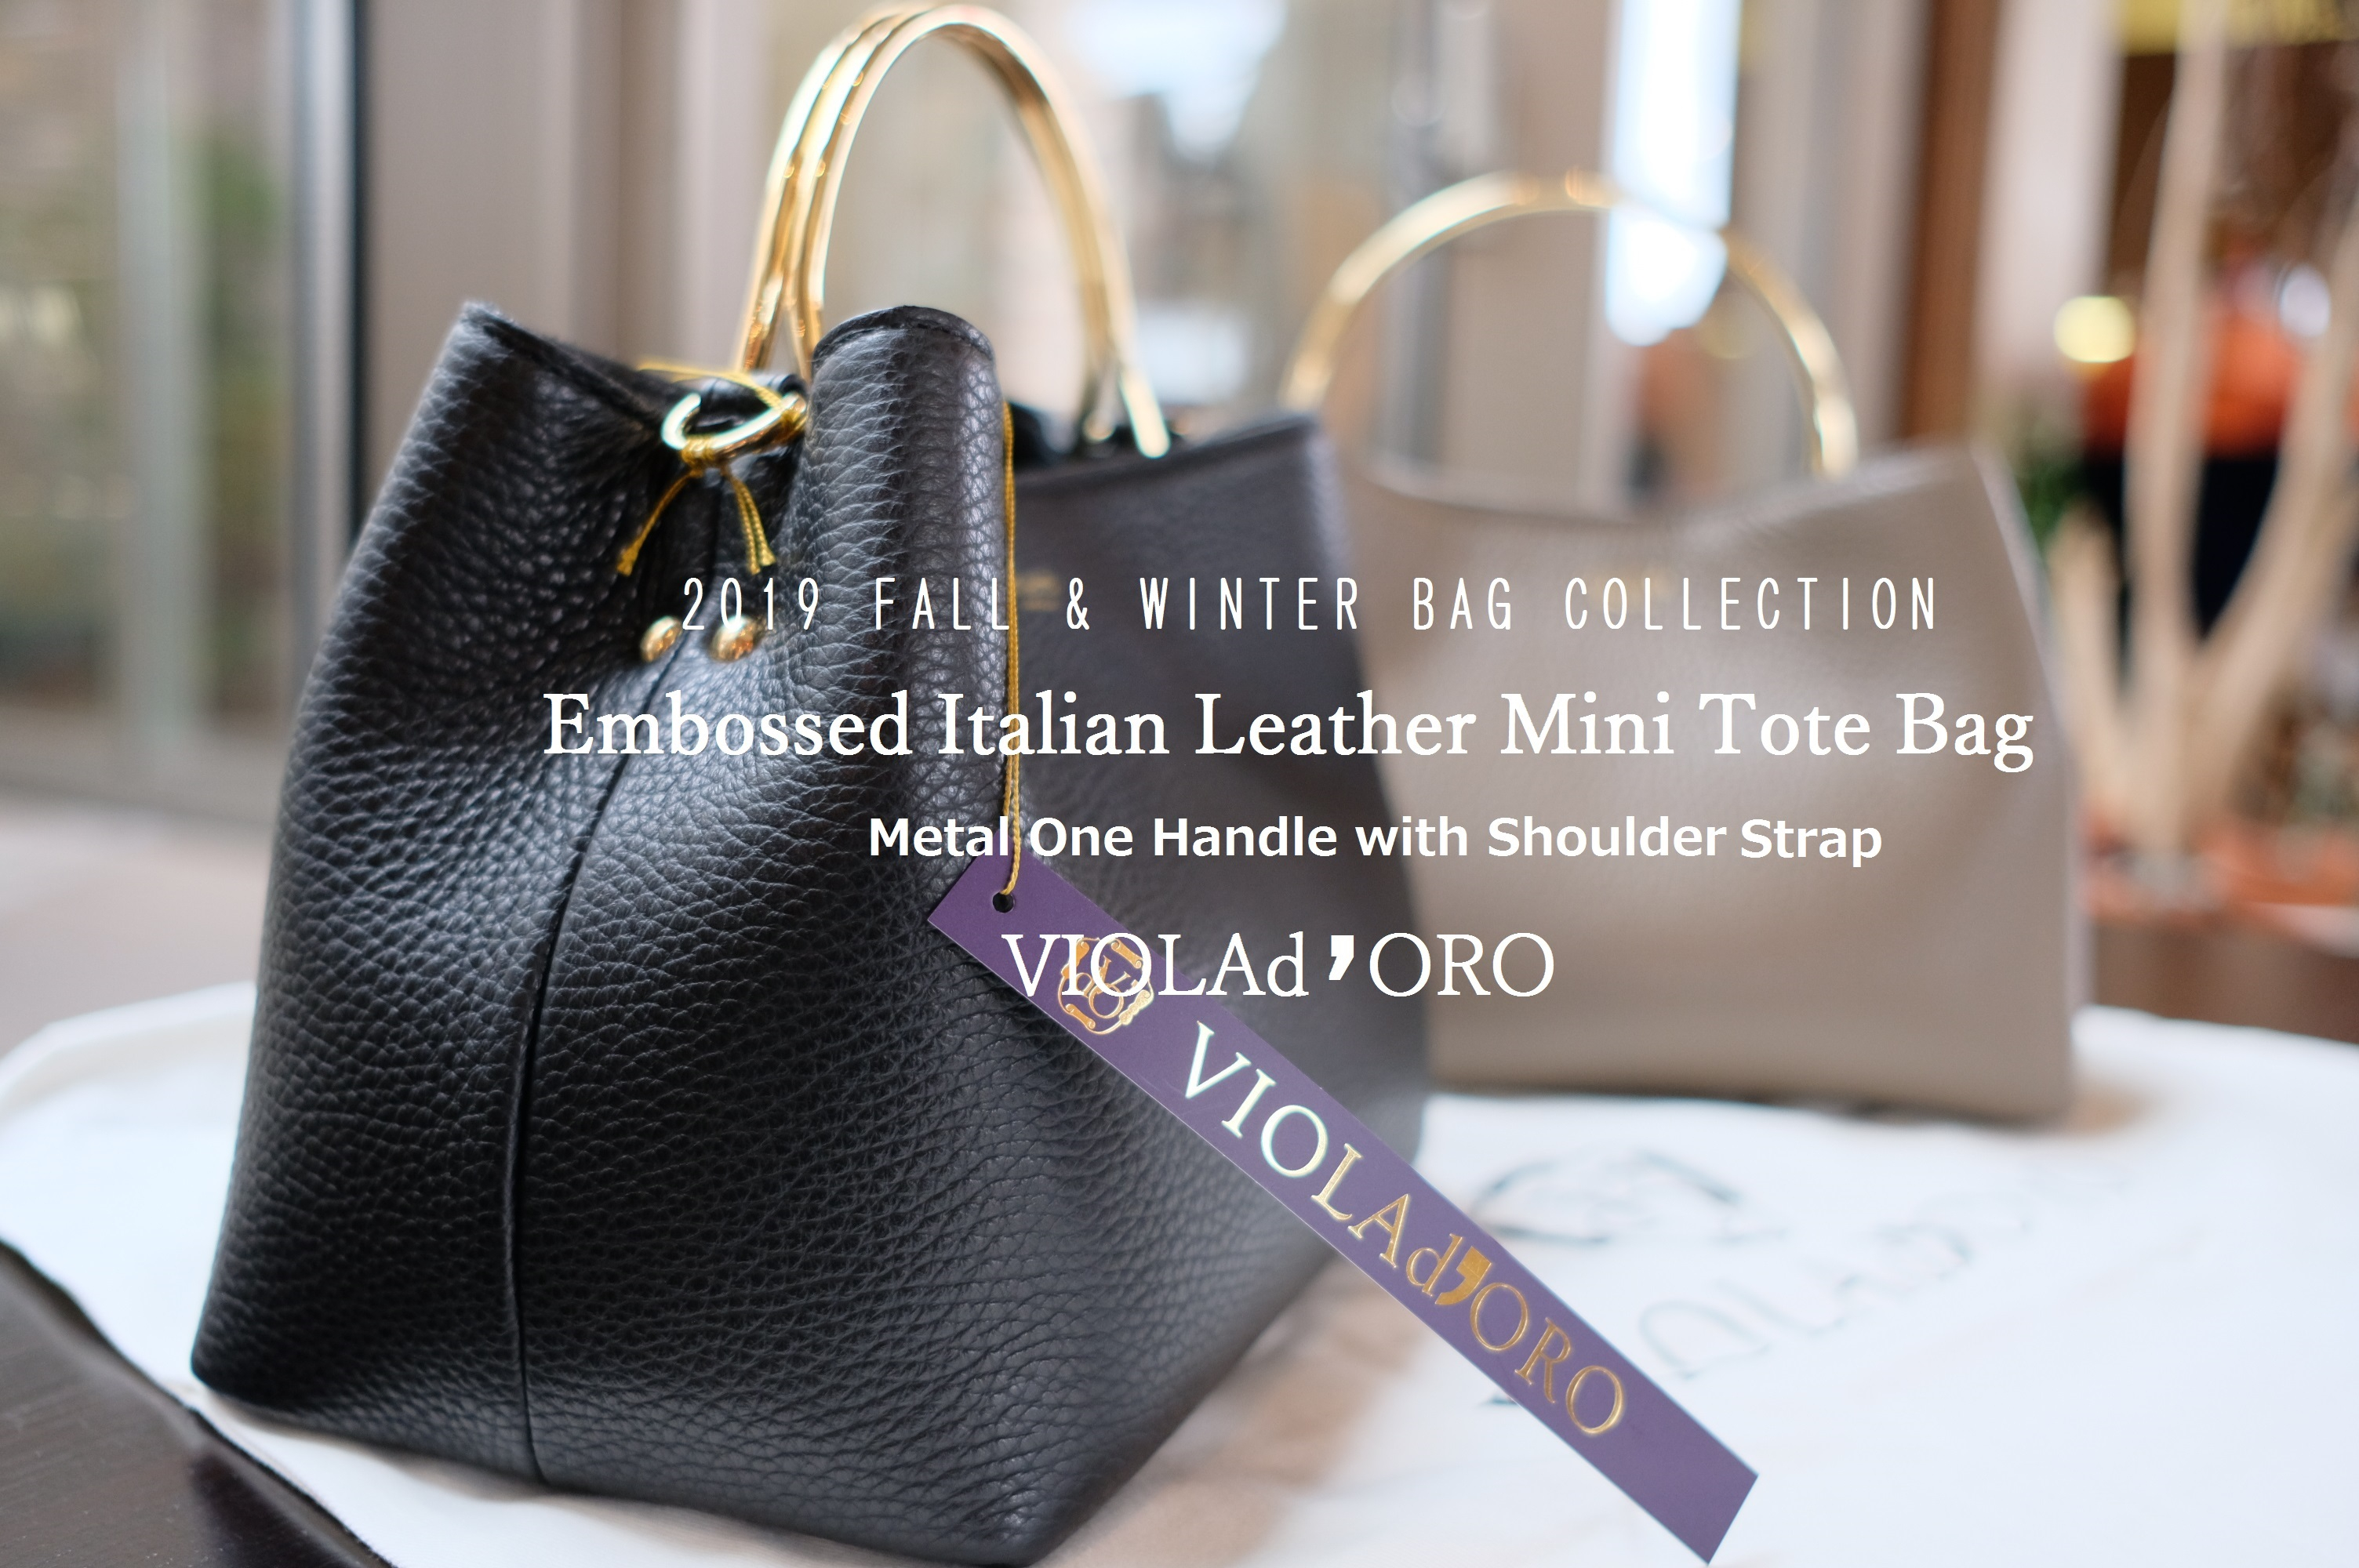 2019 Fall & Winter Spiral's Bag Collection③~ VIOLAd' ORO...9/23mon